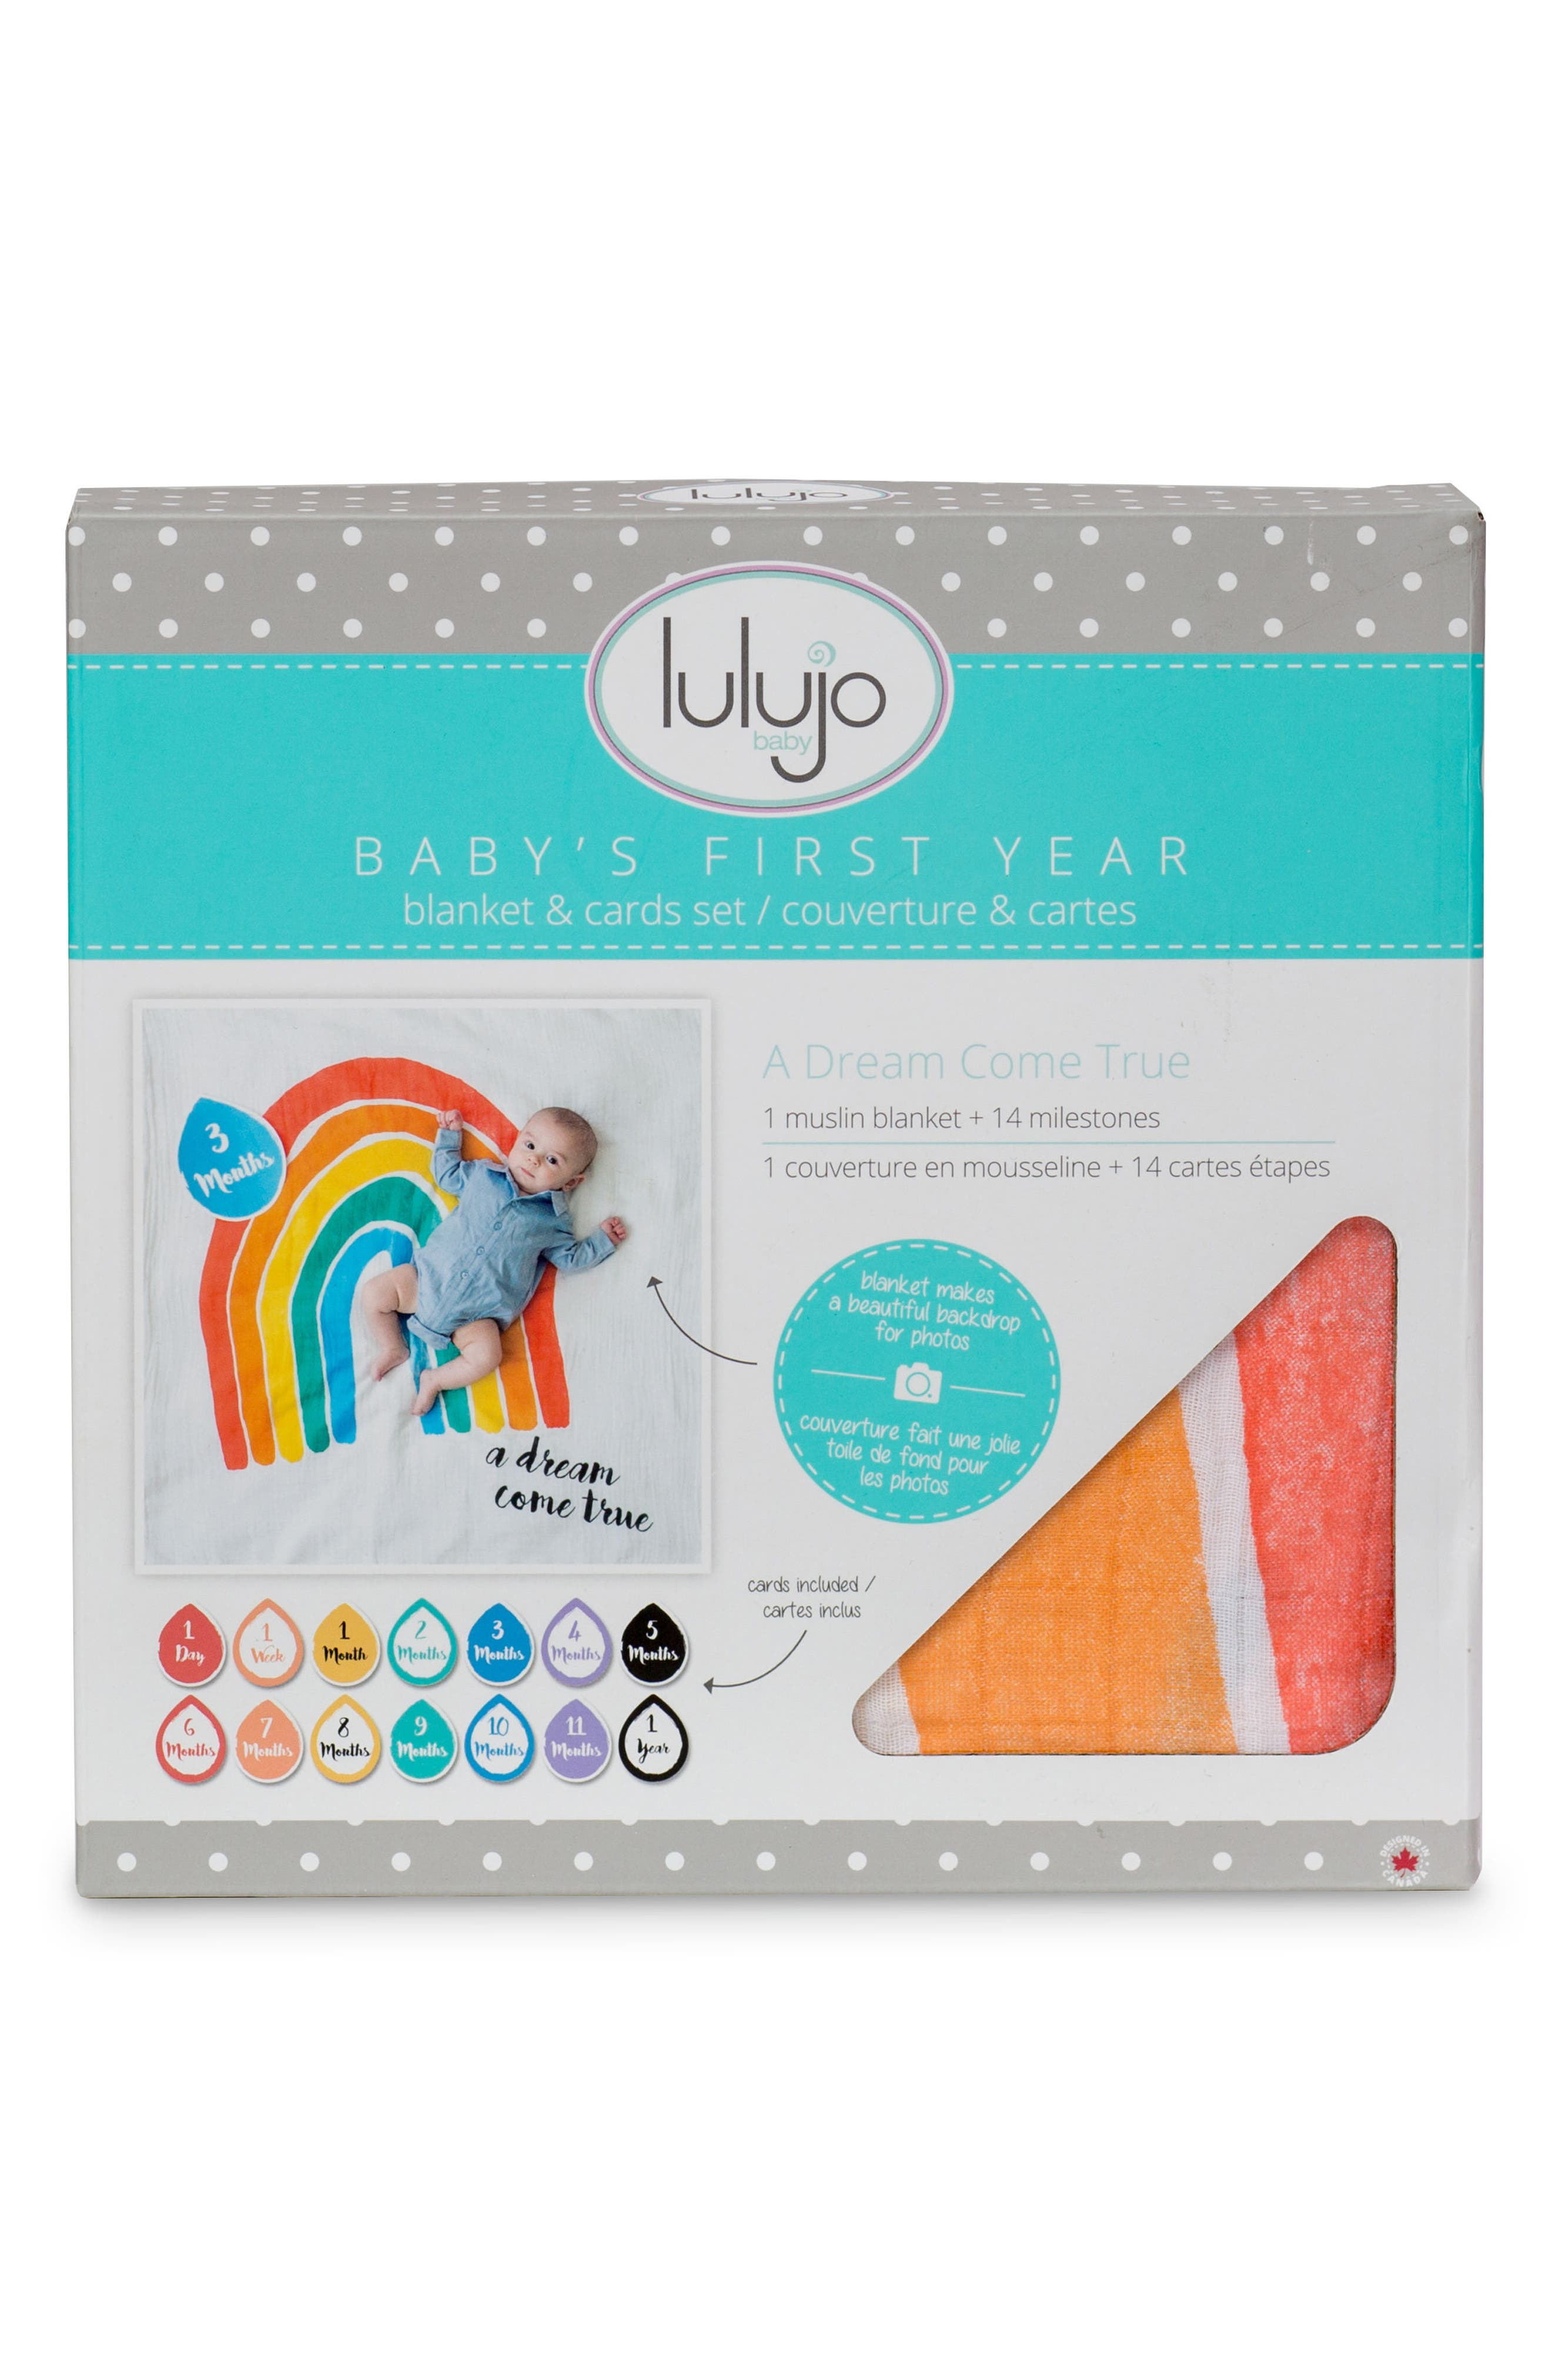 Baby's First Year - A Dream Come True Muslin Blanket & Milestone Card Set,                             Alternate thumbnail 3, color,                             DREAM COME TRUE